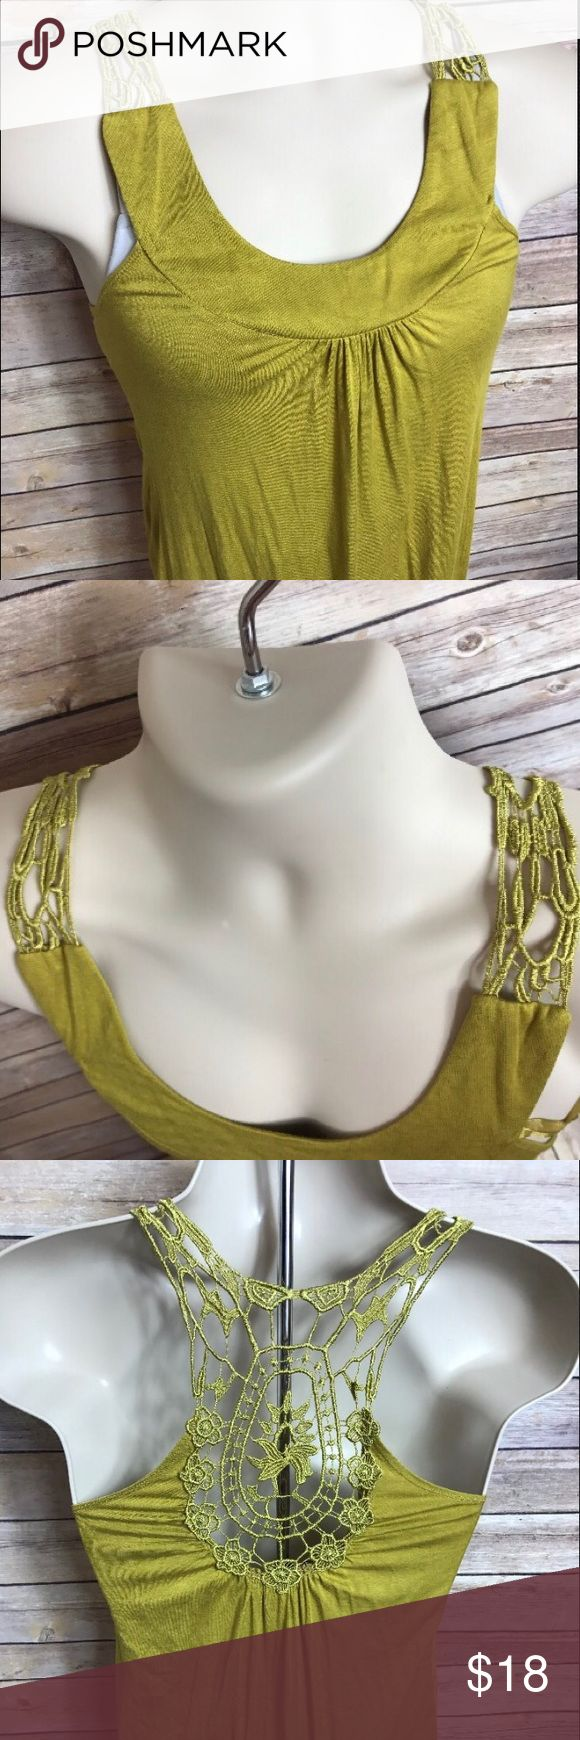 """Charlotte Russe Womans SM Yellow Tank Top Blouse Up for sale is a Charlotte Russe Womans size Small open back tank top blouse. This item doesn't have any flaws! (Meaning it's stain, rip, and heavy wear free!) Wear it with your favorite jeans, or under a blazer at the office - either way, this tank would be a perfect addition to your wardrobe. 💛 Measurements:  Pit to Pit: 14""""  Length: 28"""" Charlotte Russe Tops Tank Tops"""